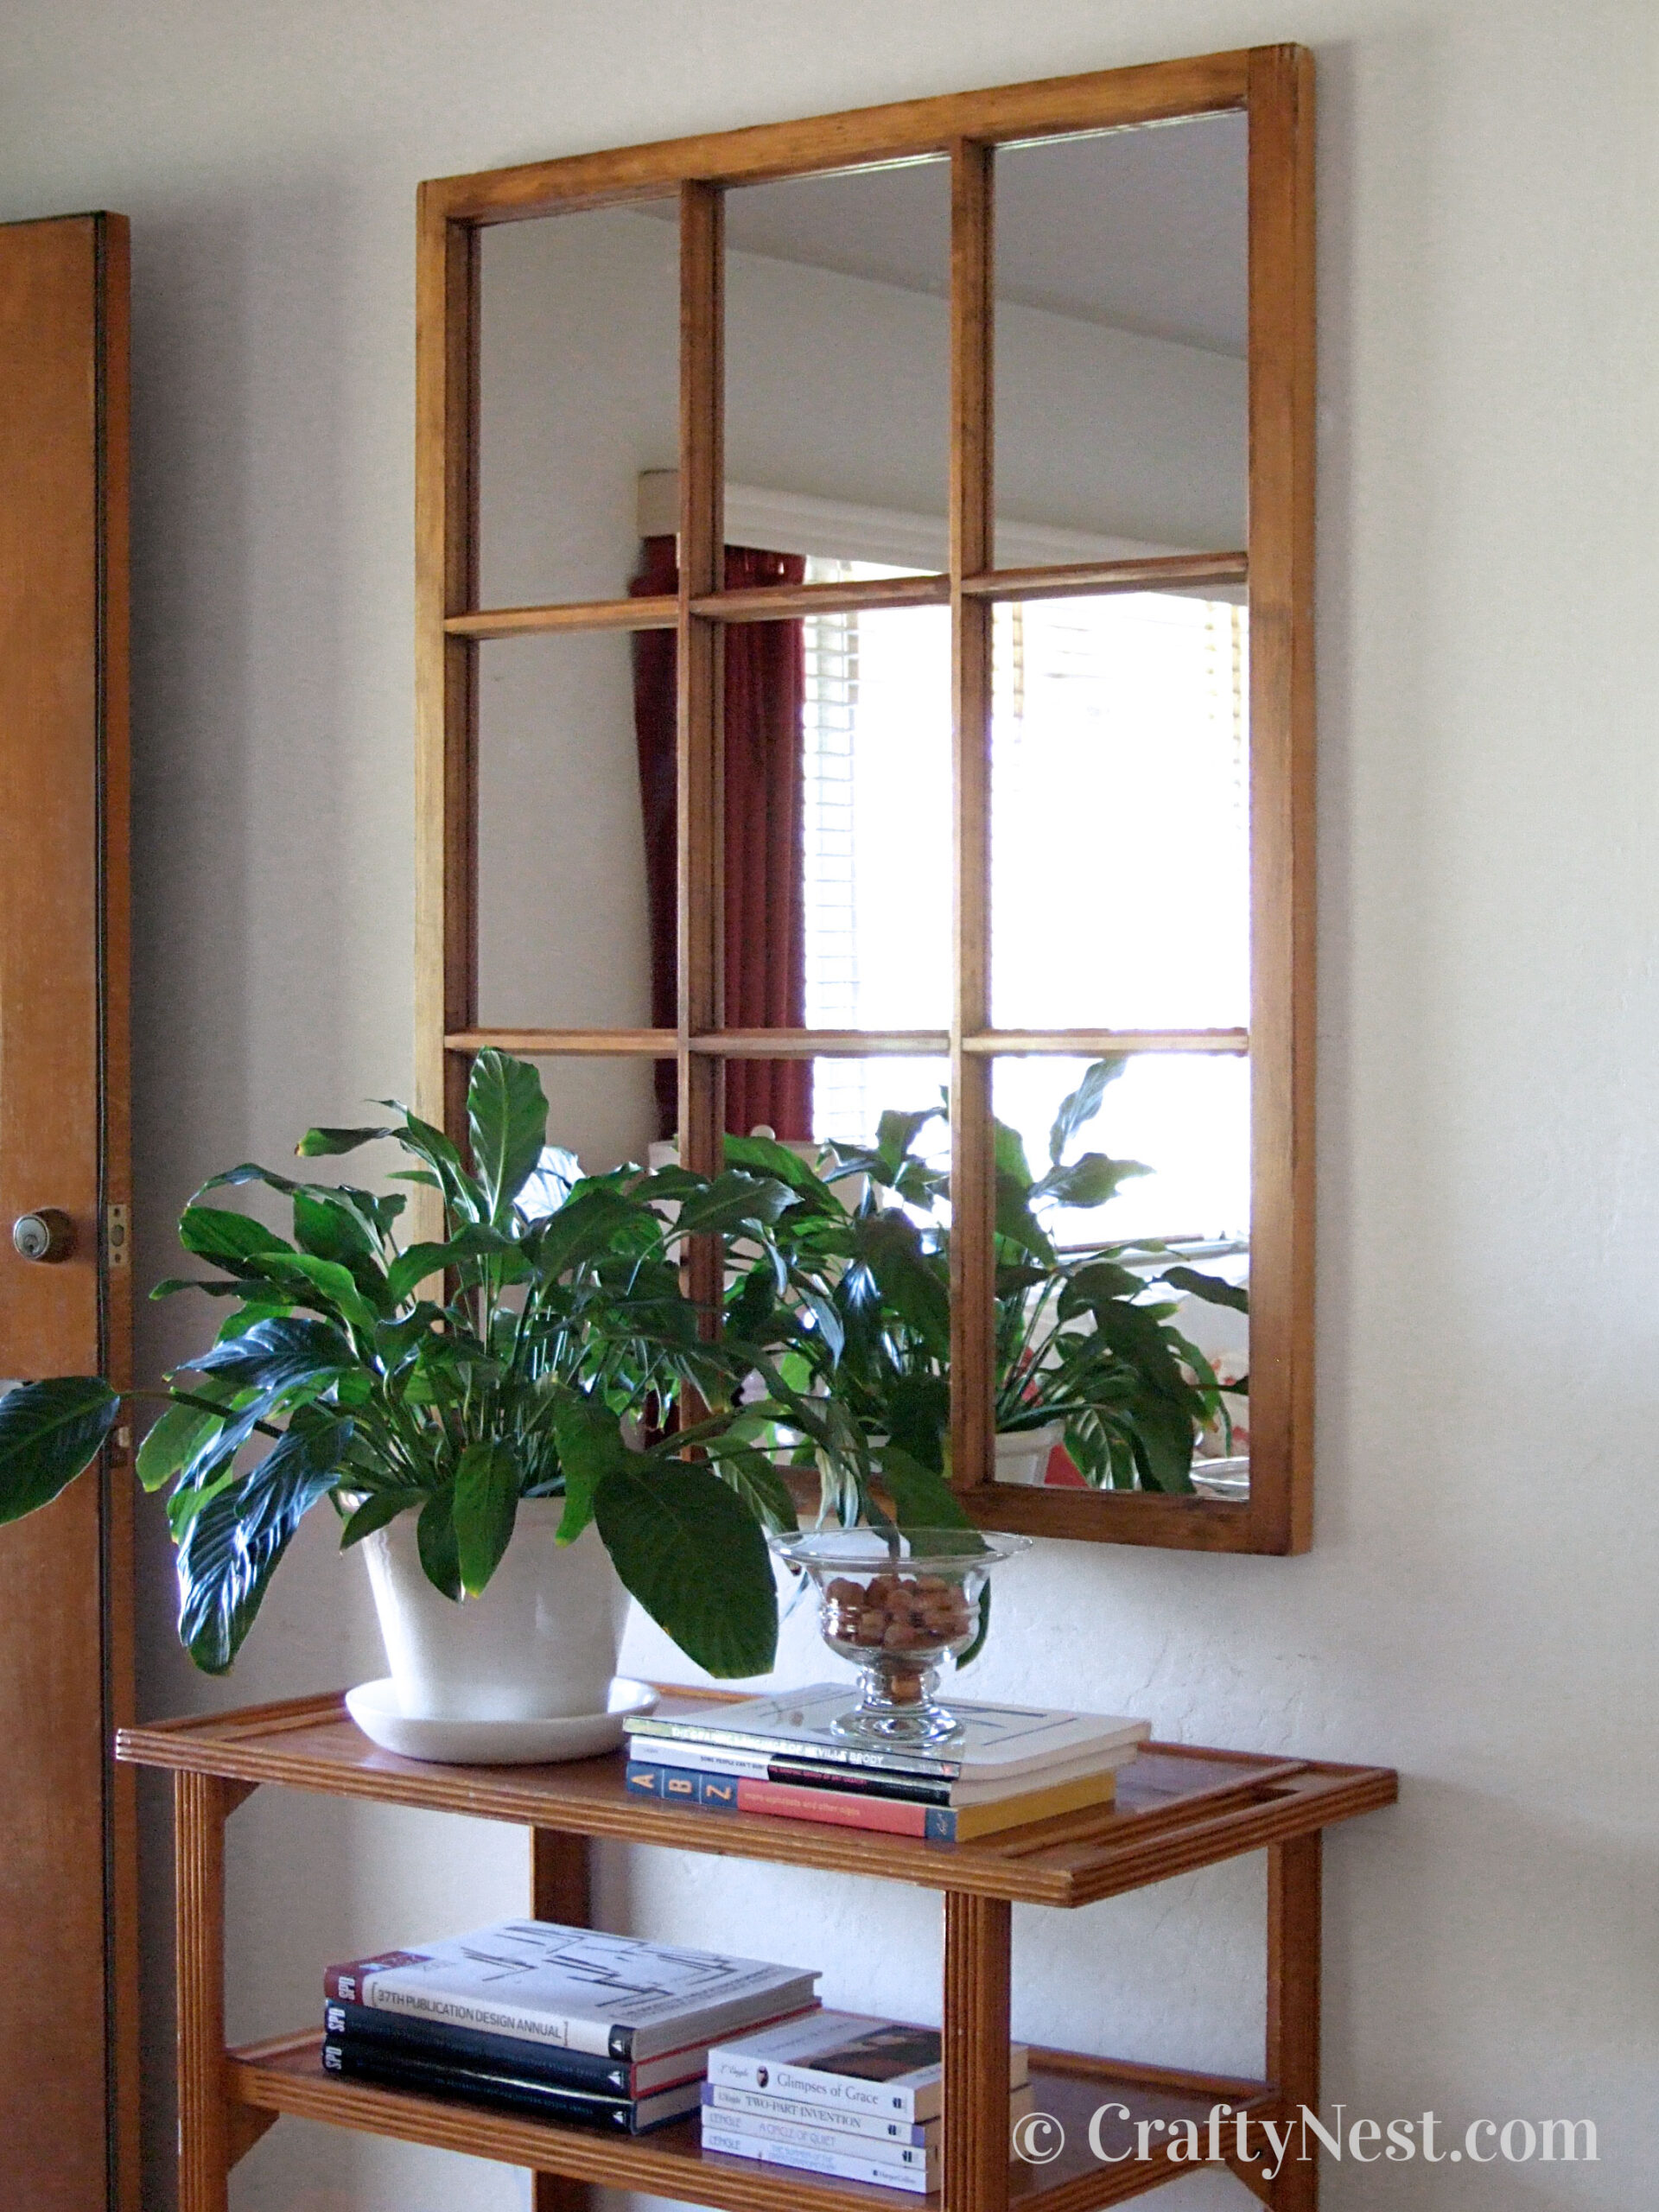 Salvaged window frame mirror, photo